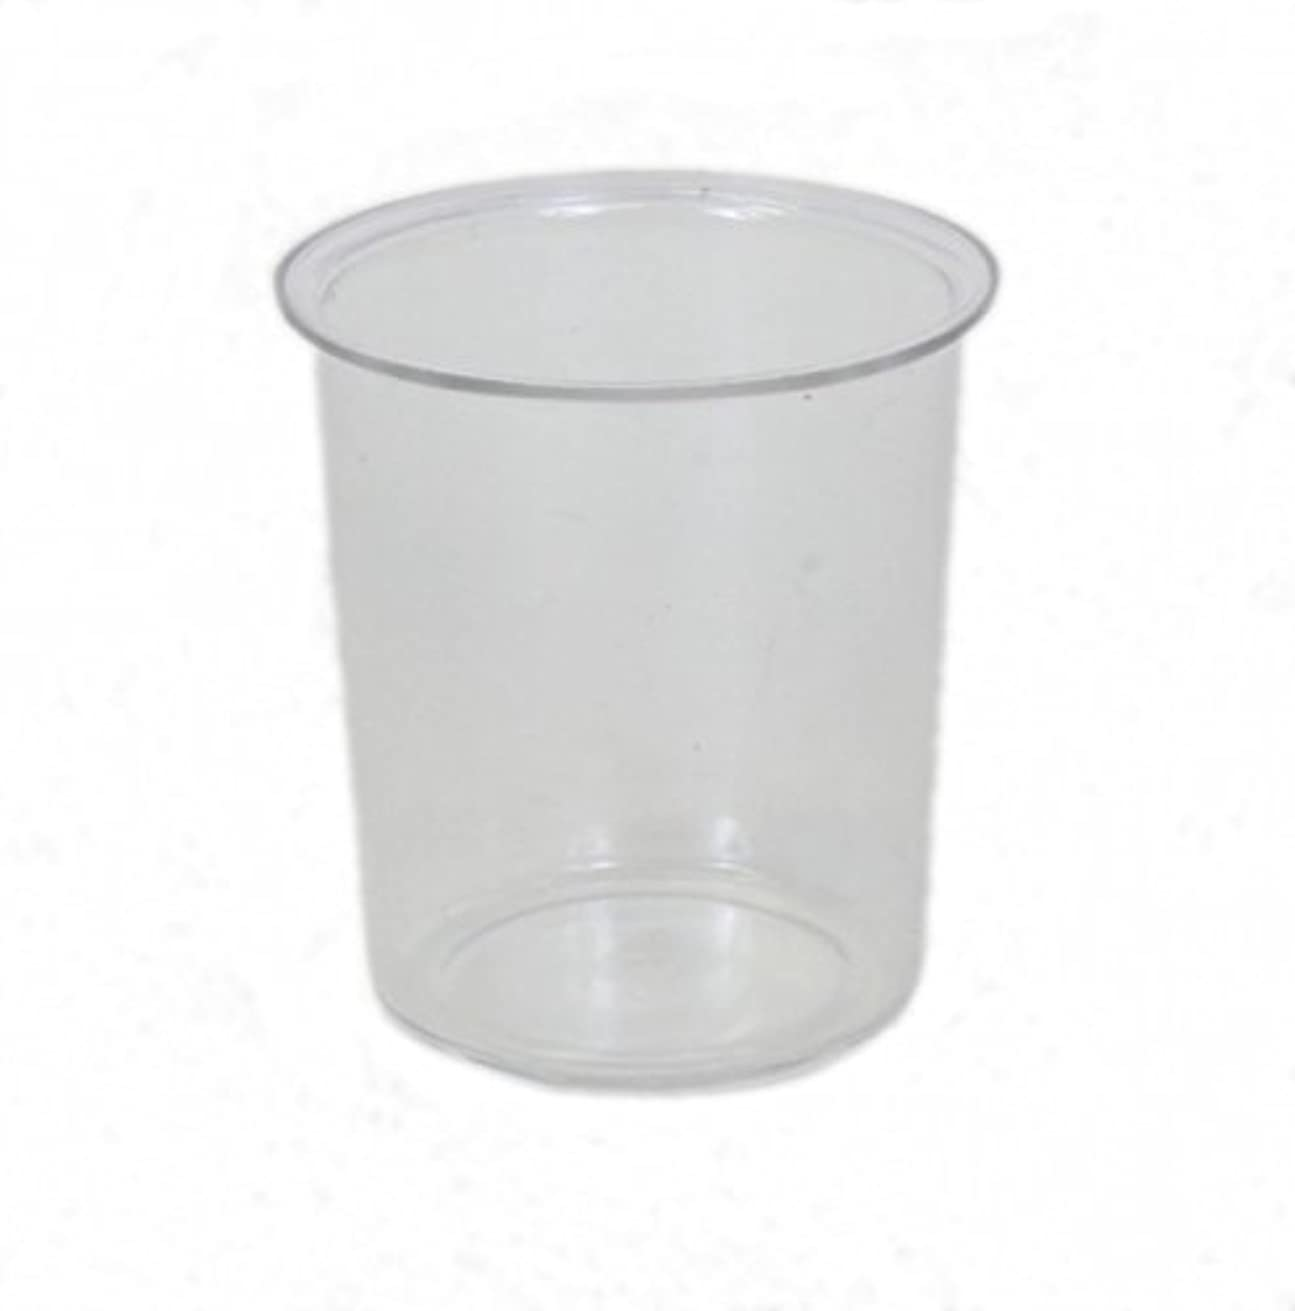 Plastic Votive Molds (Set of 10)